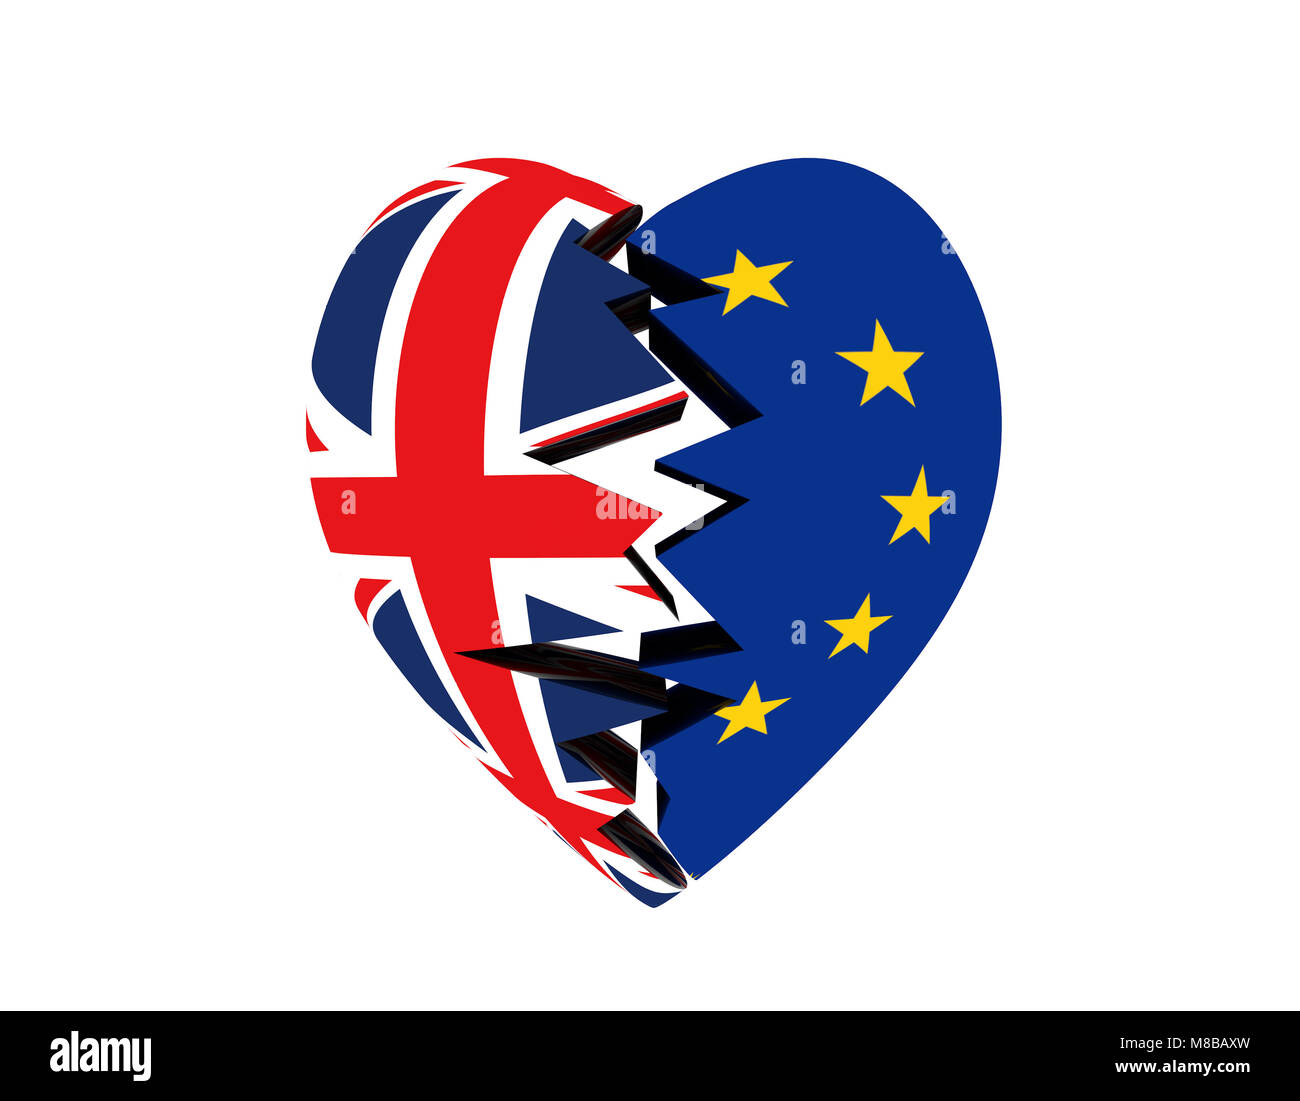 Out of EU, EU flag - Stock Image